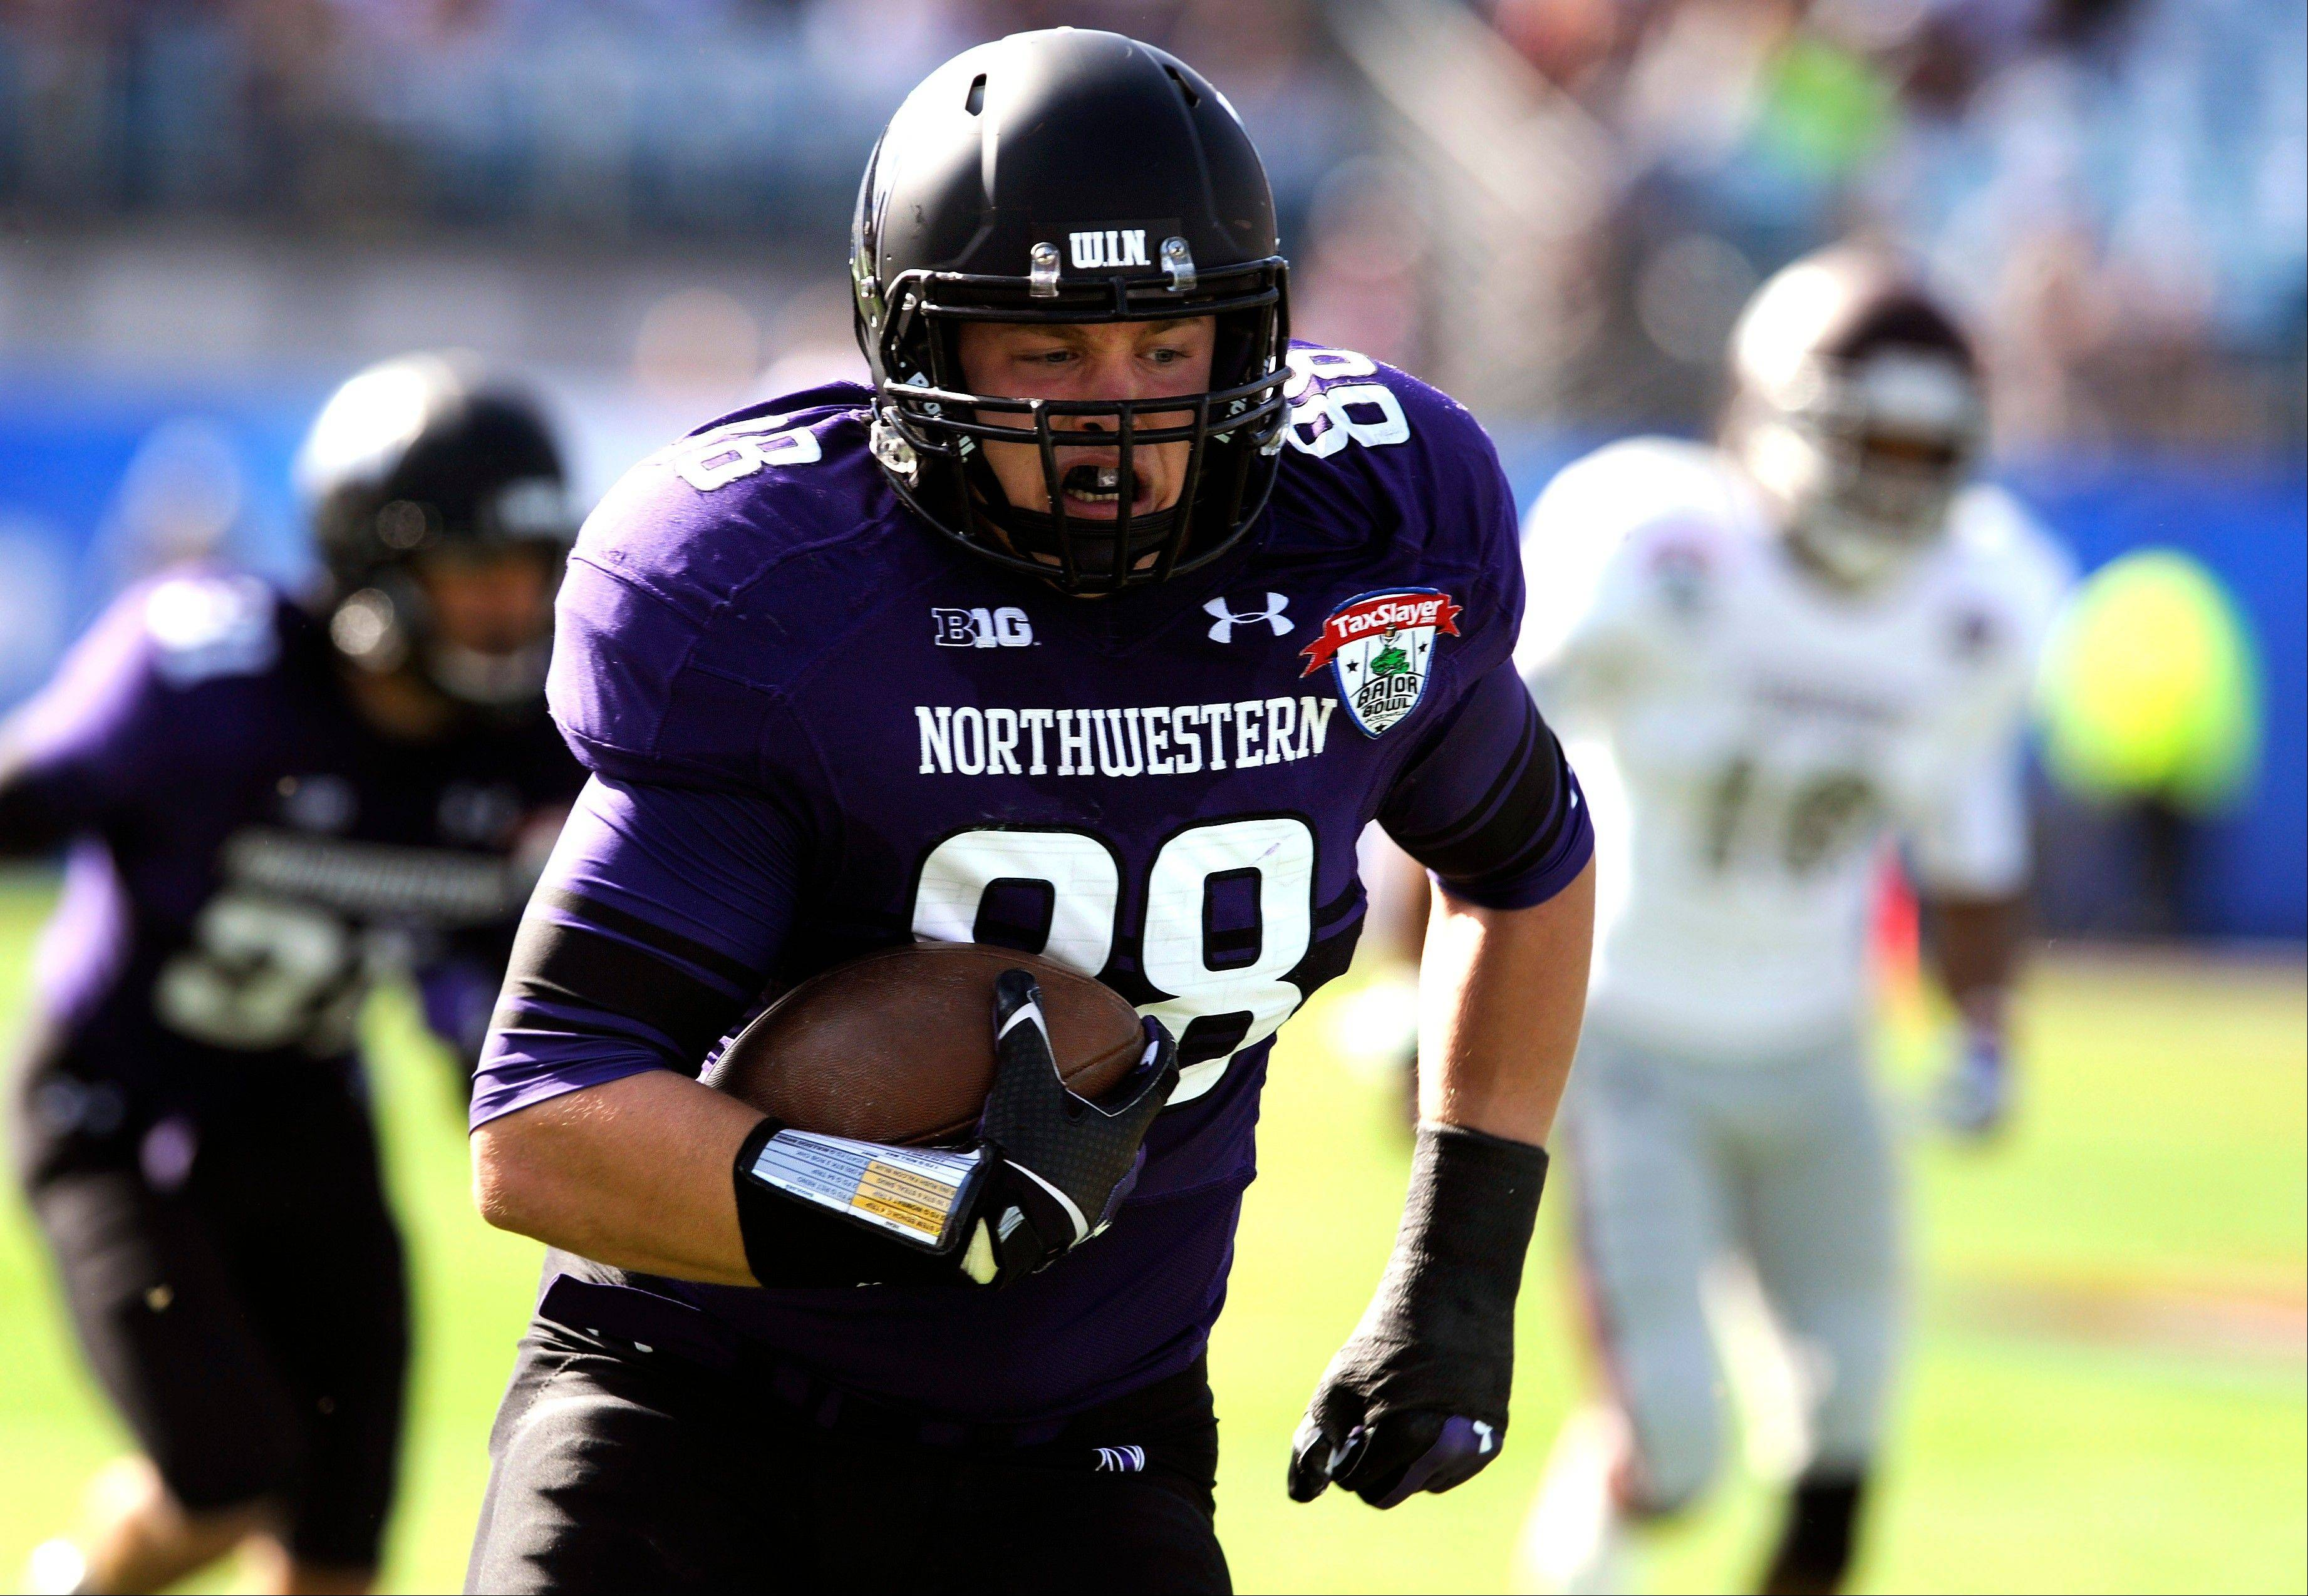 Northwestern defensive lineman Quentin Williams (88) returns an interception for a touchdown during the first half of the Gator Bowl against Mississippi State on Tuesday in Jacksonville, Fla.